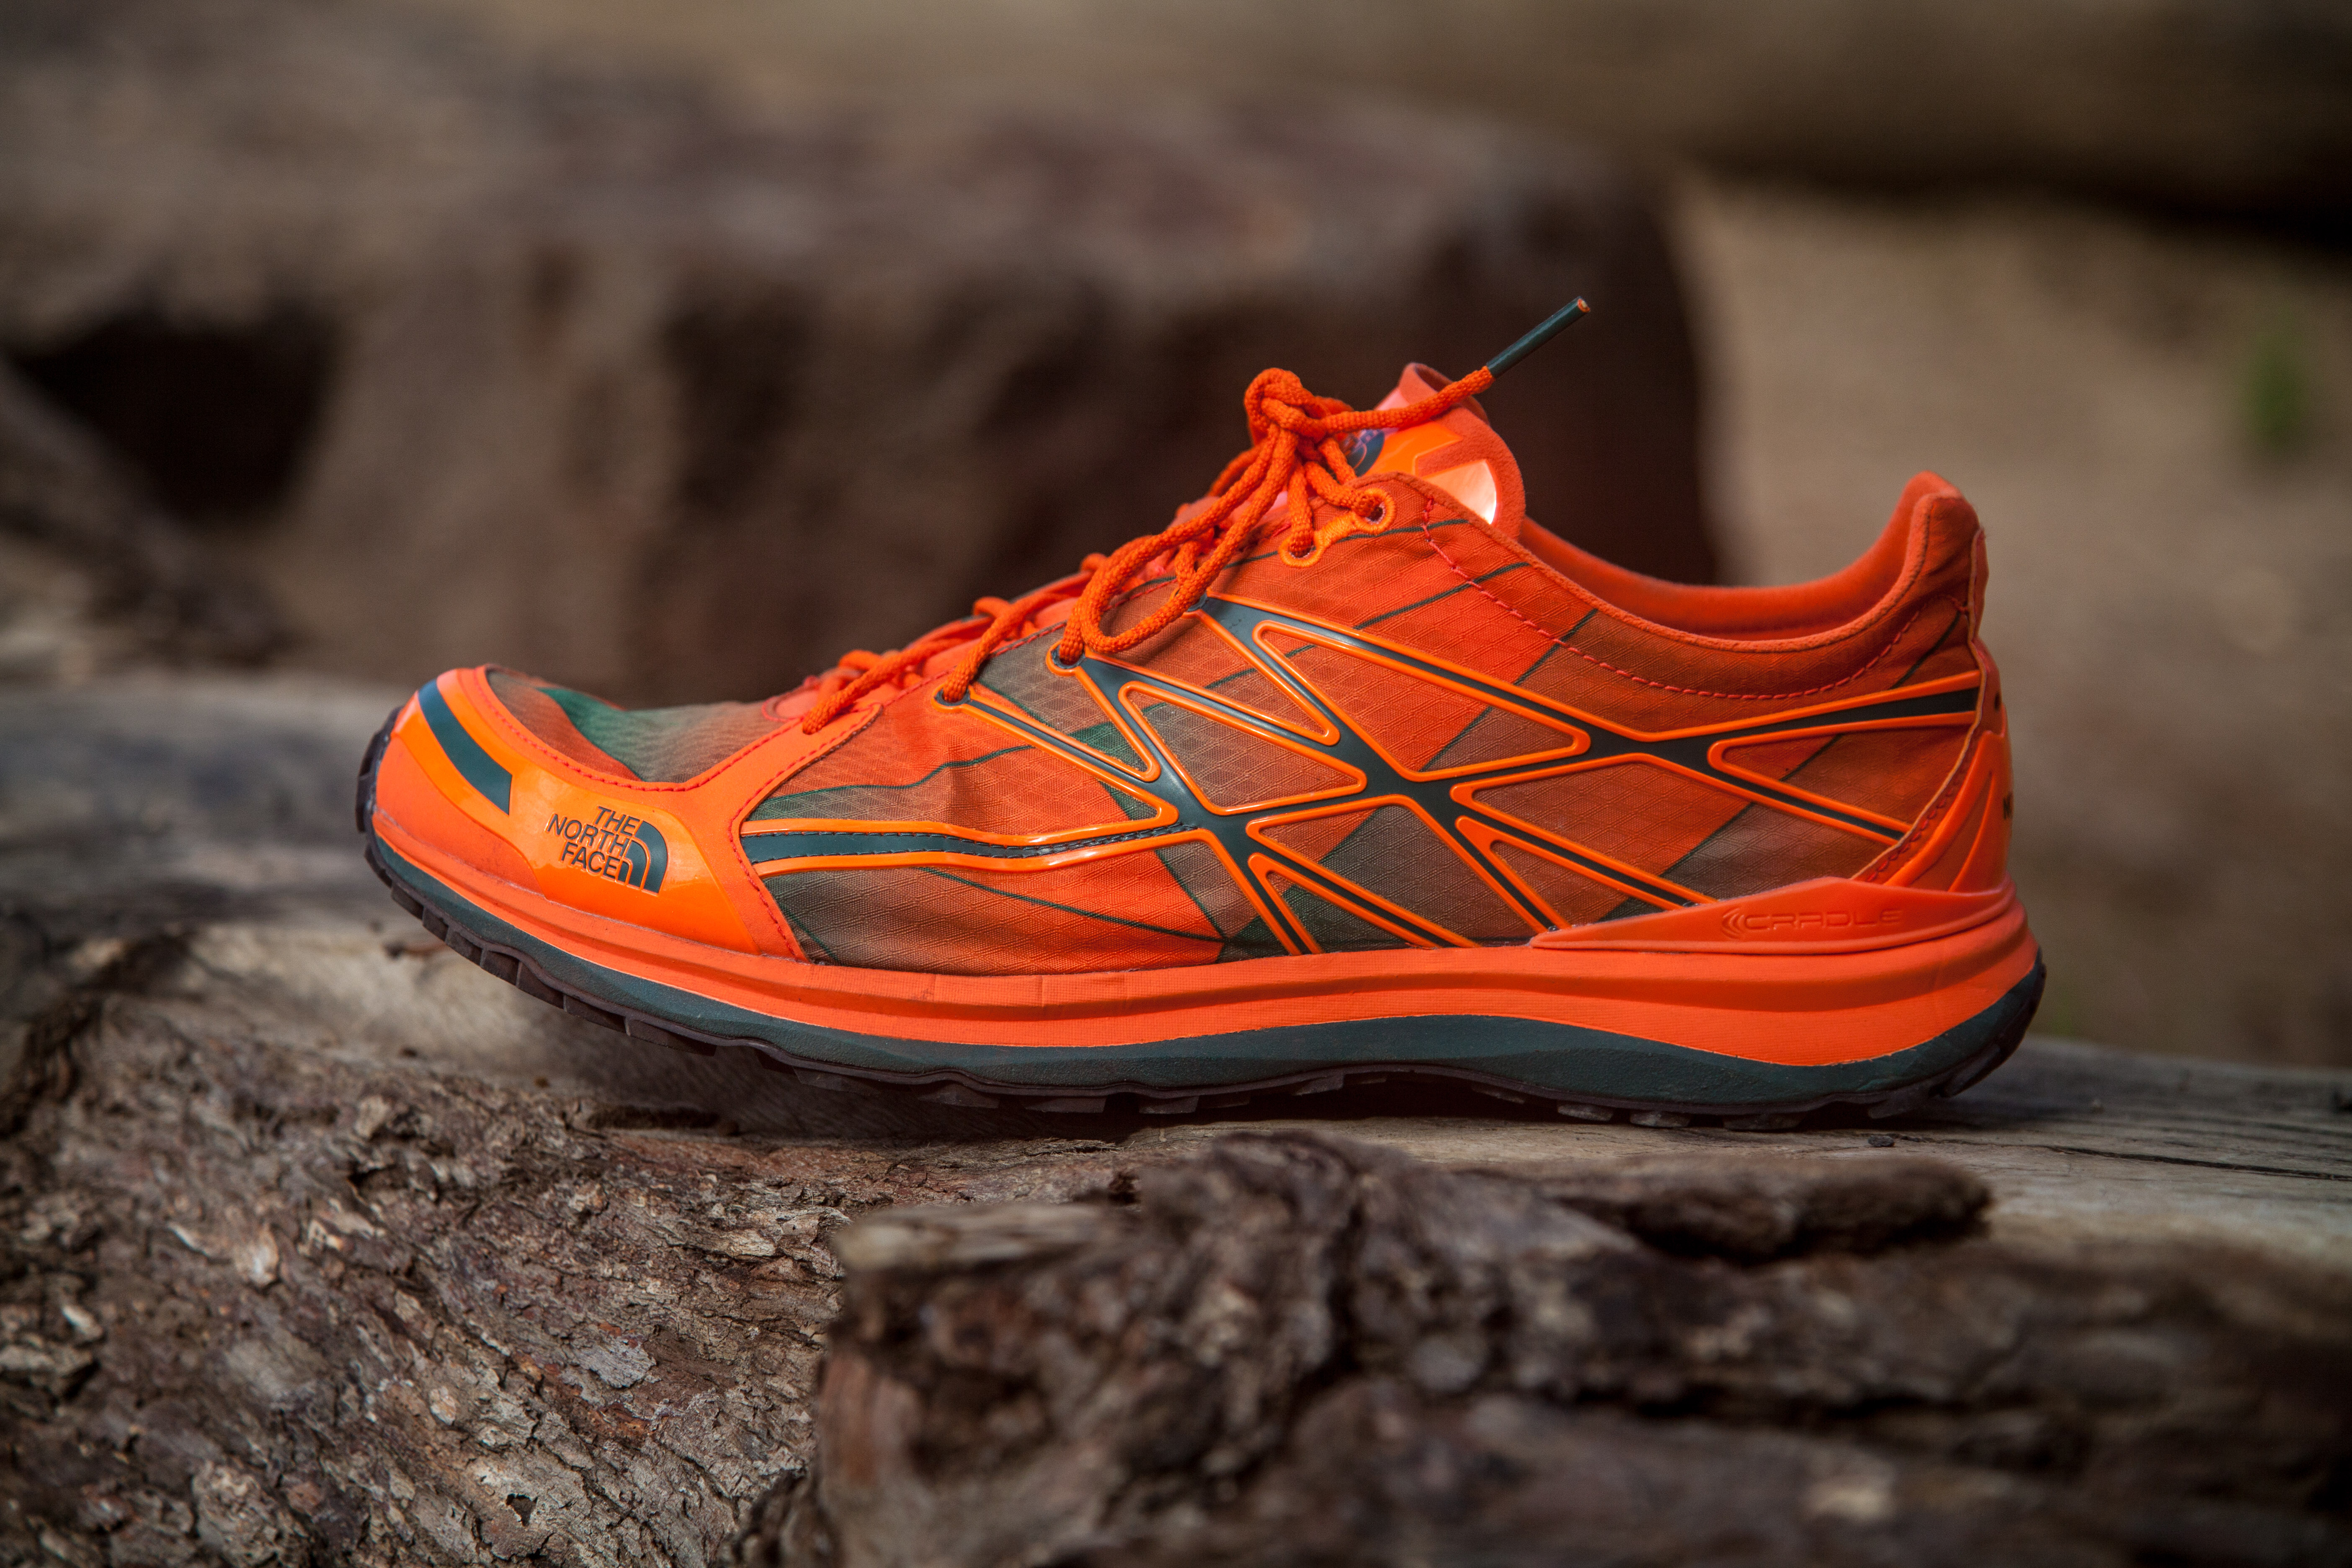 480c081fb21 Shoe Review – The North Face Ultra Trail II - TrailRun Magazine